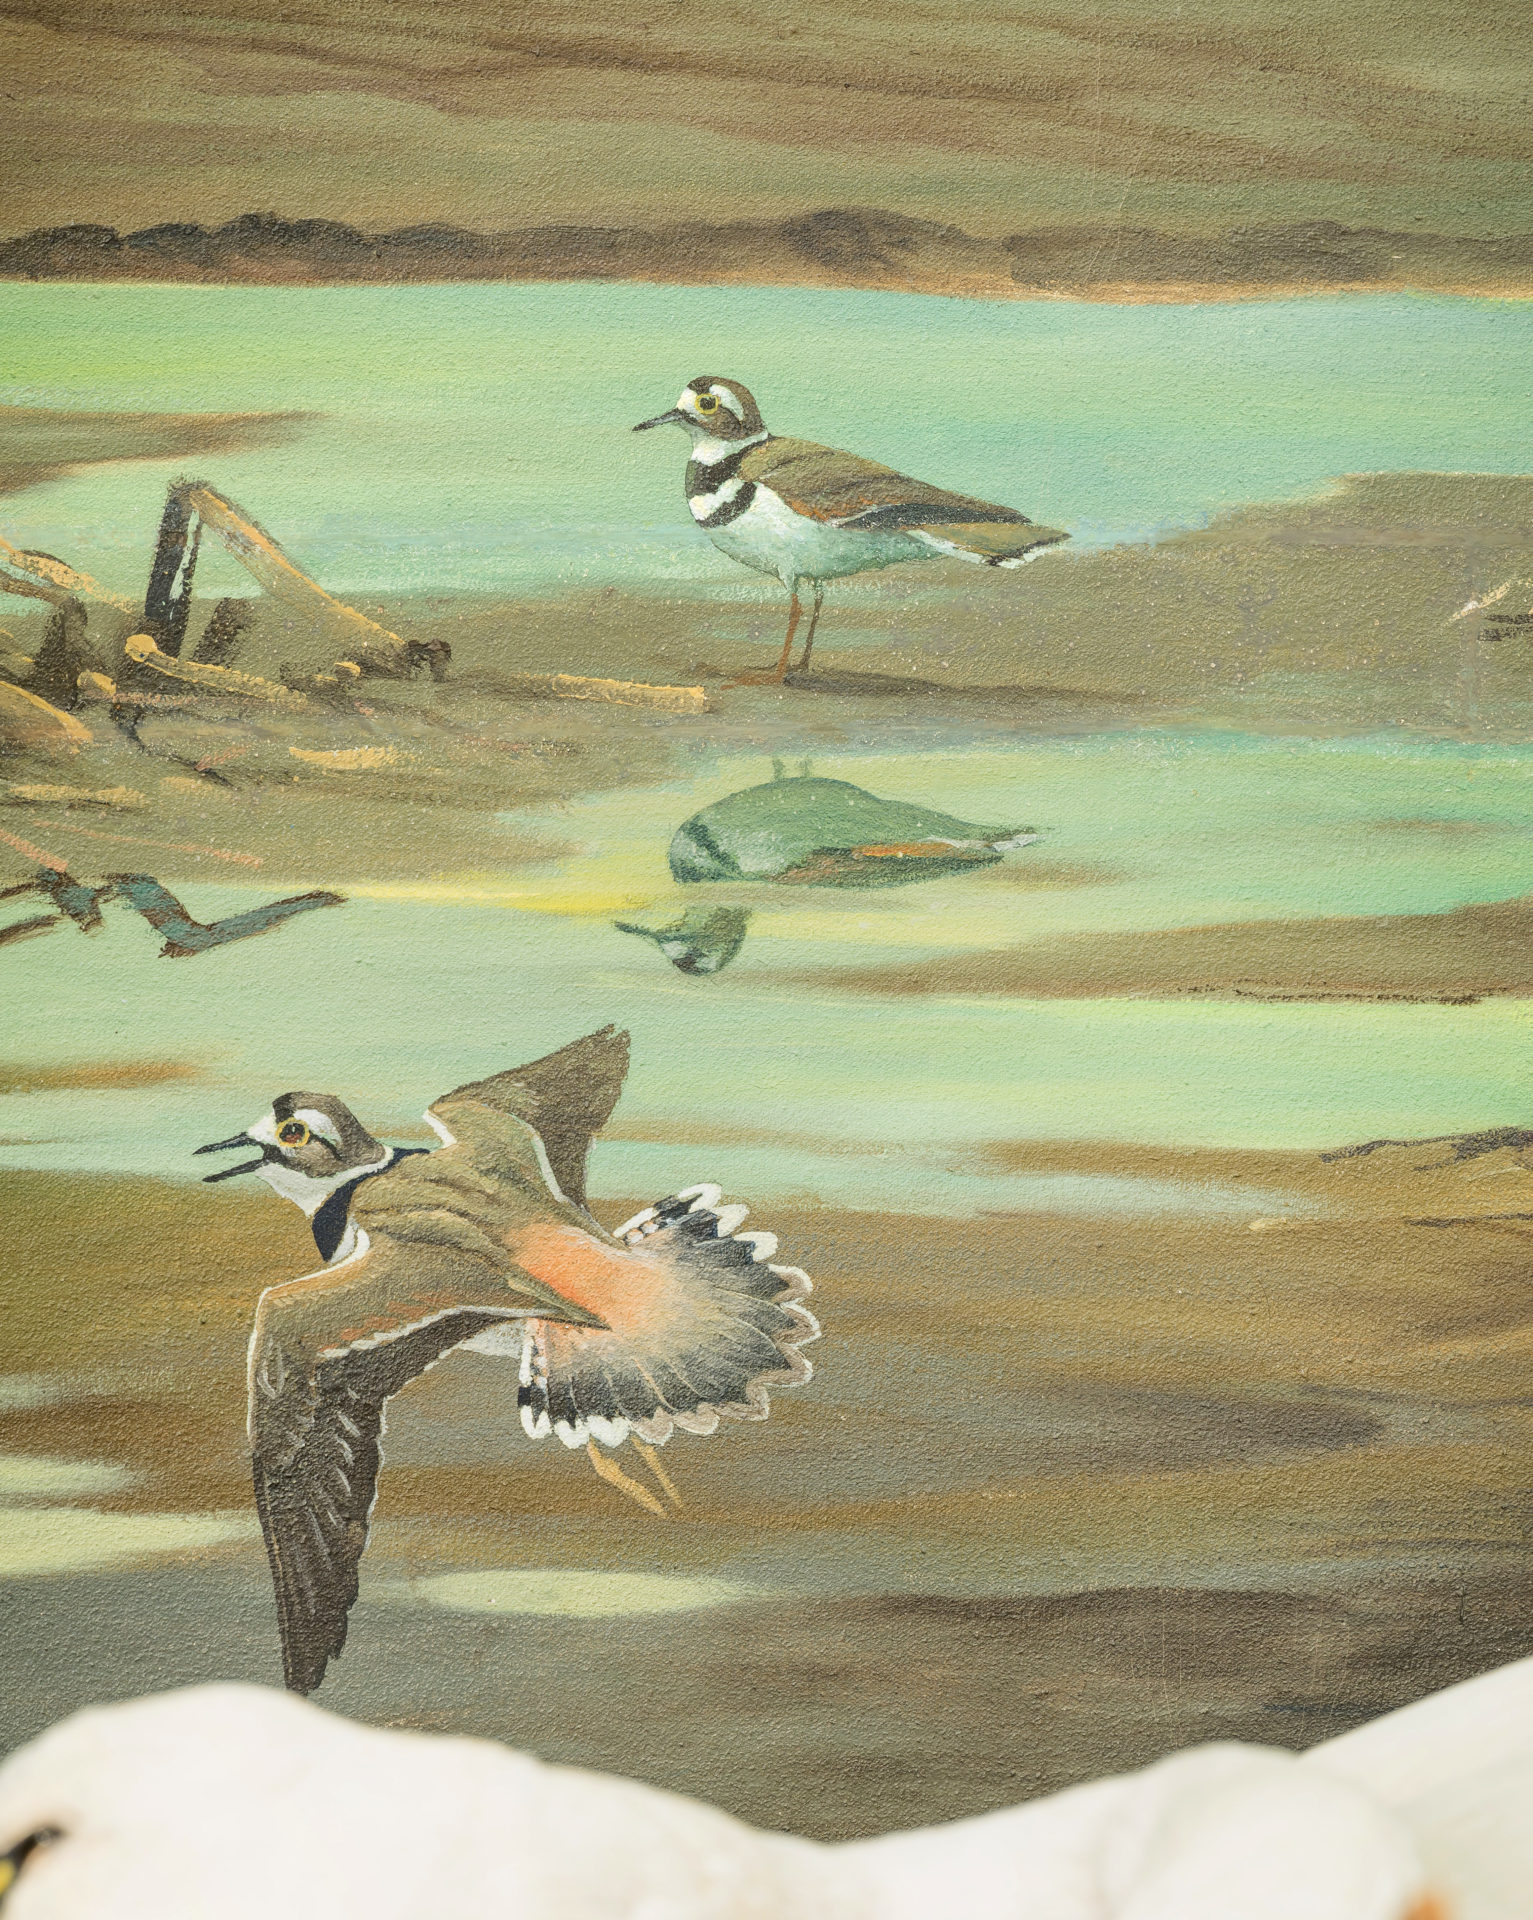 killdeer flying and standing